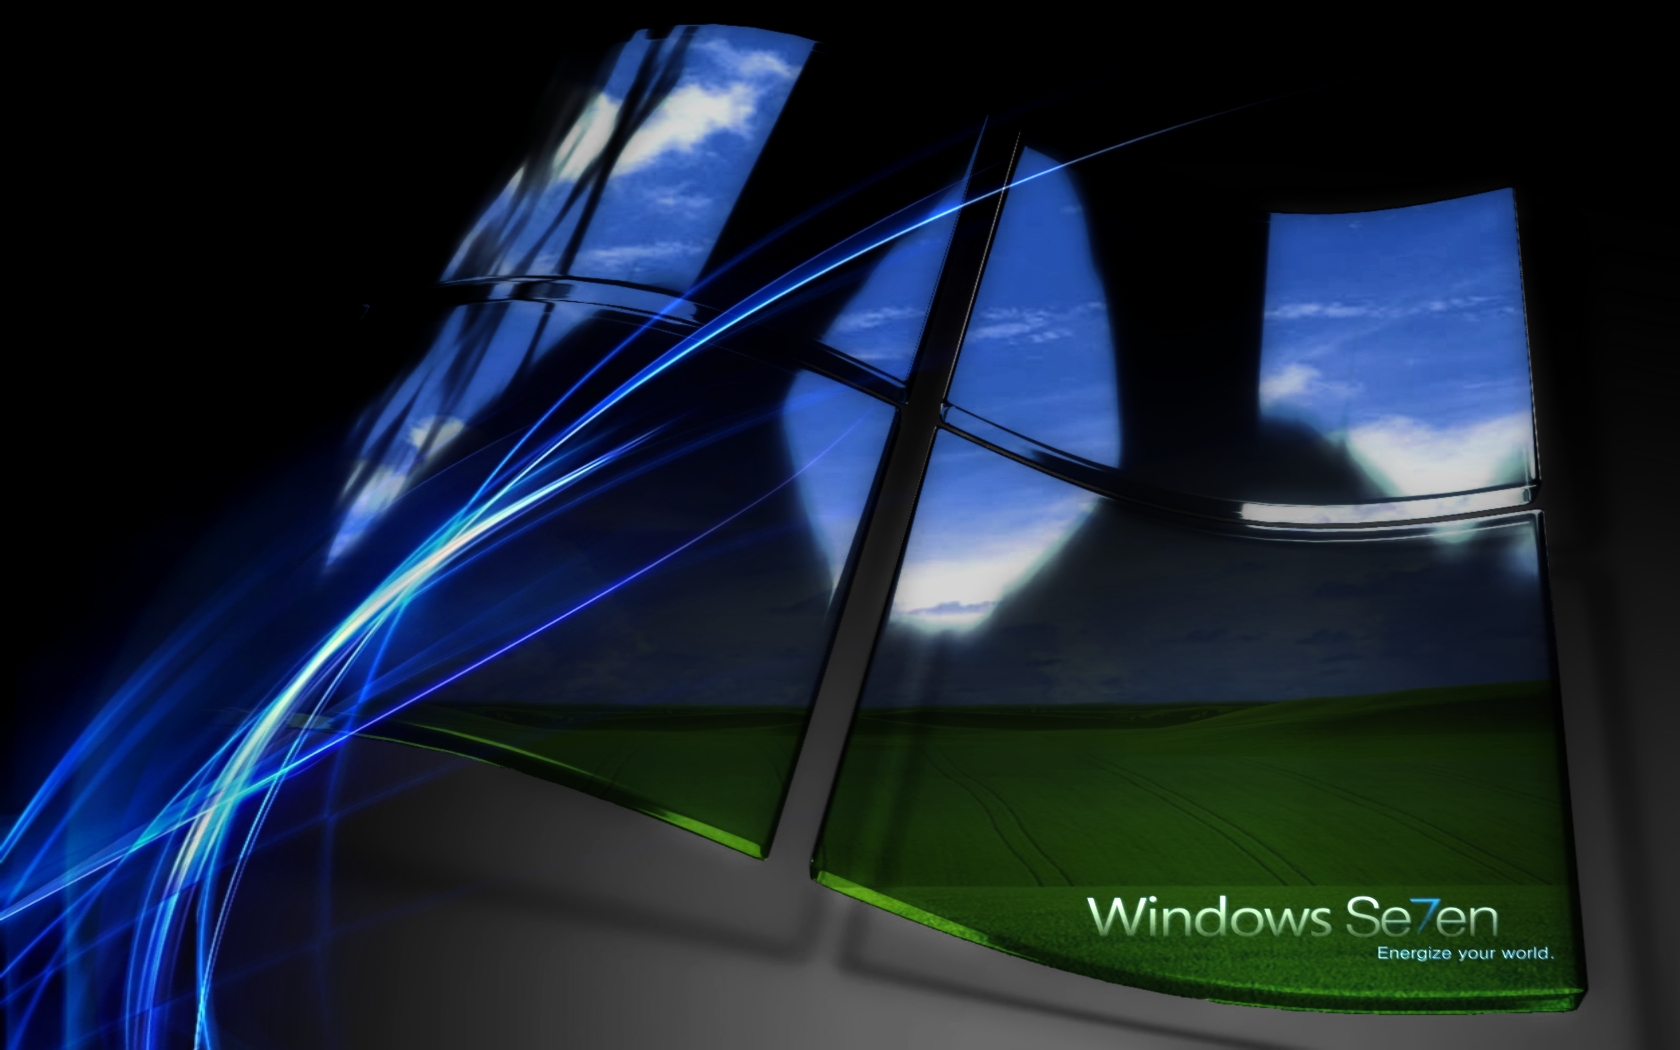 post Windows 7 Ultimate HD Wallpaper appeared first on HD Wallpaper 1680x1050